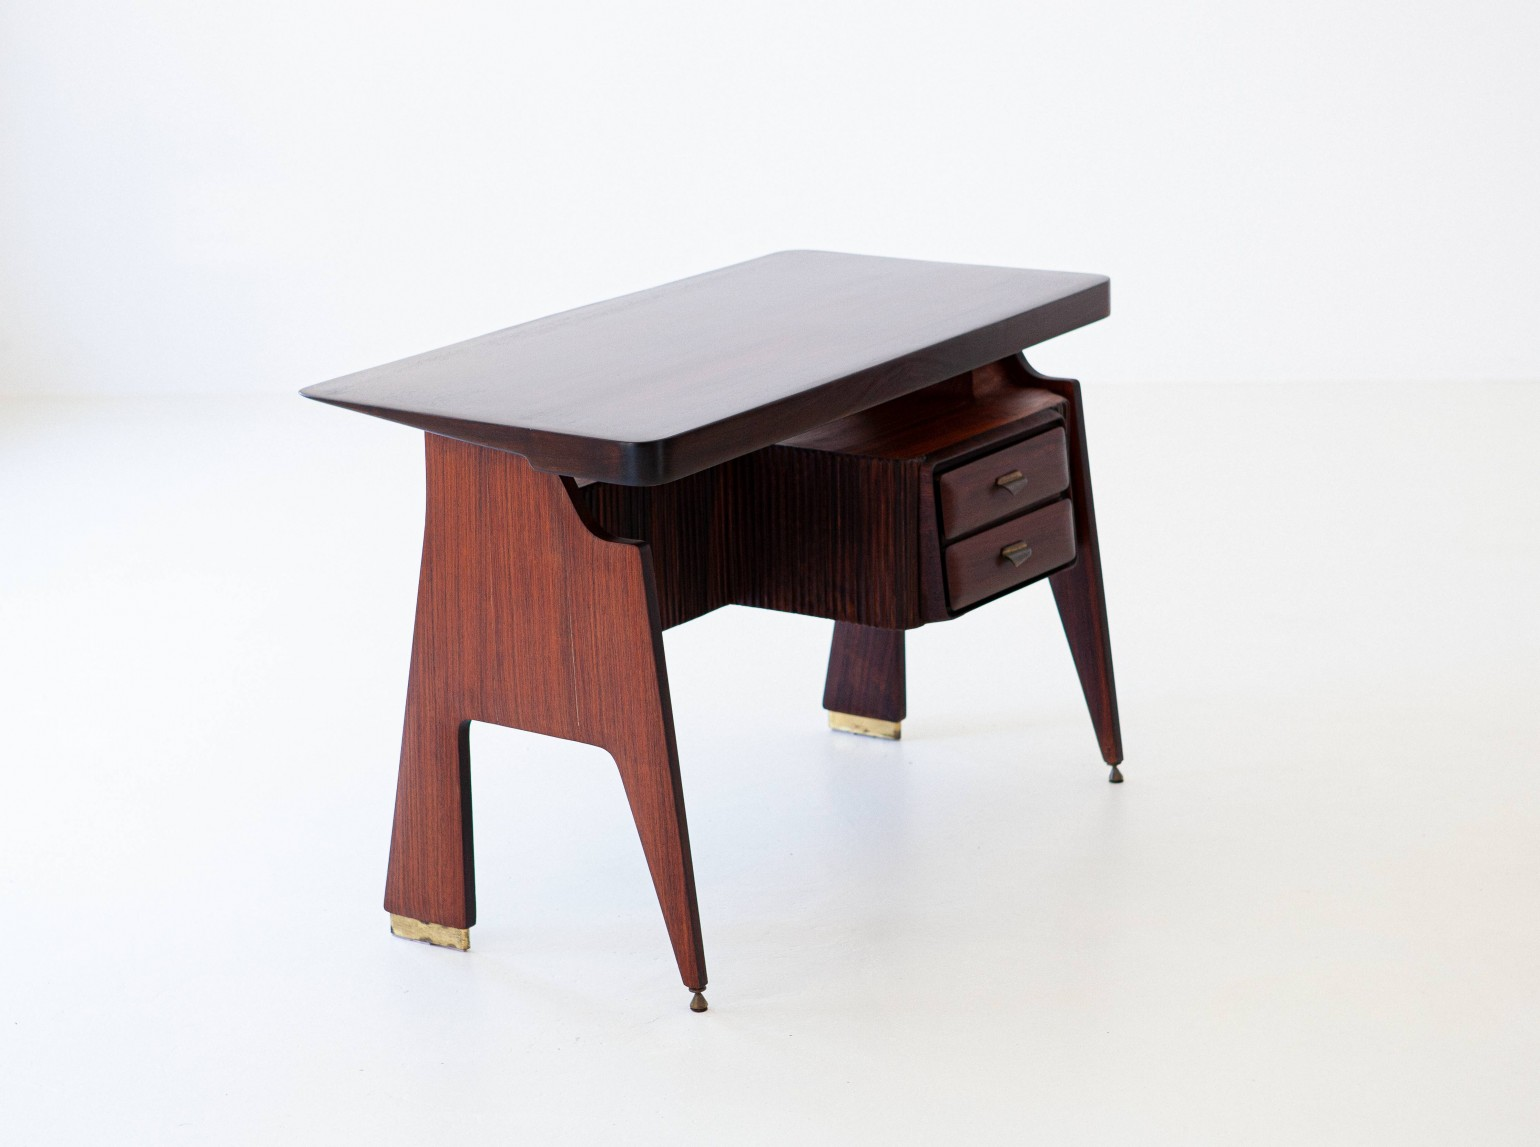 1950s Italian Rosewood Desk Table by Dassi  DT28 – Not Available